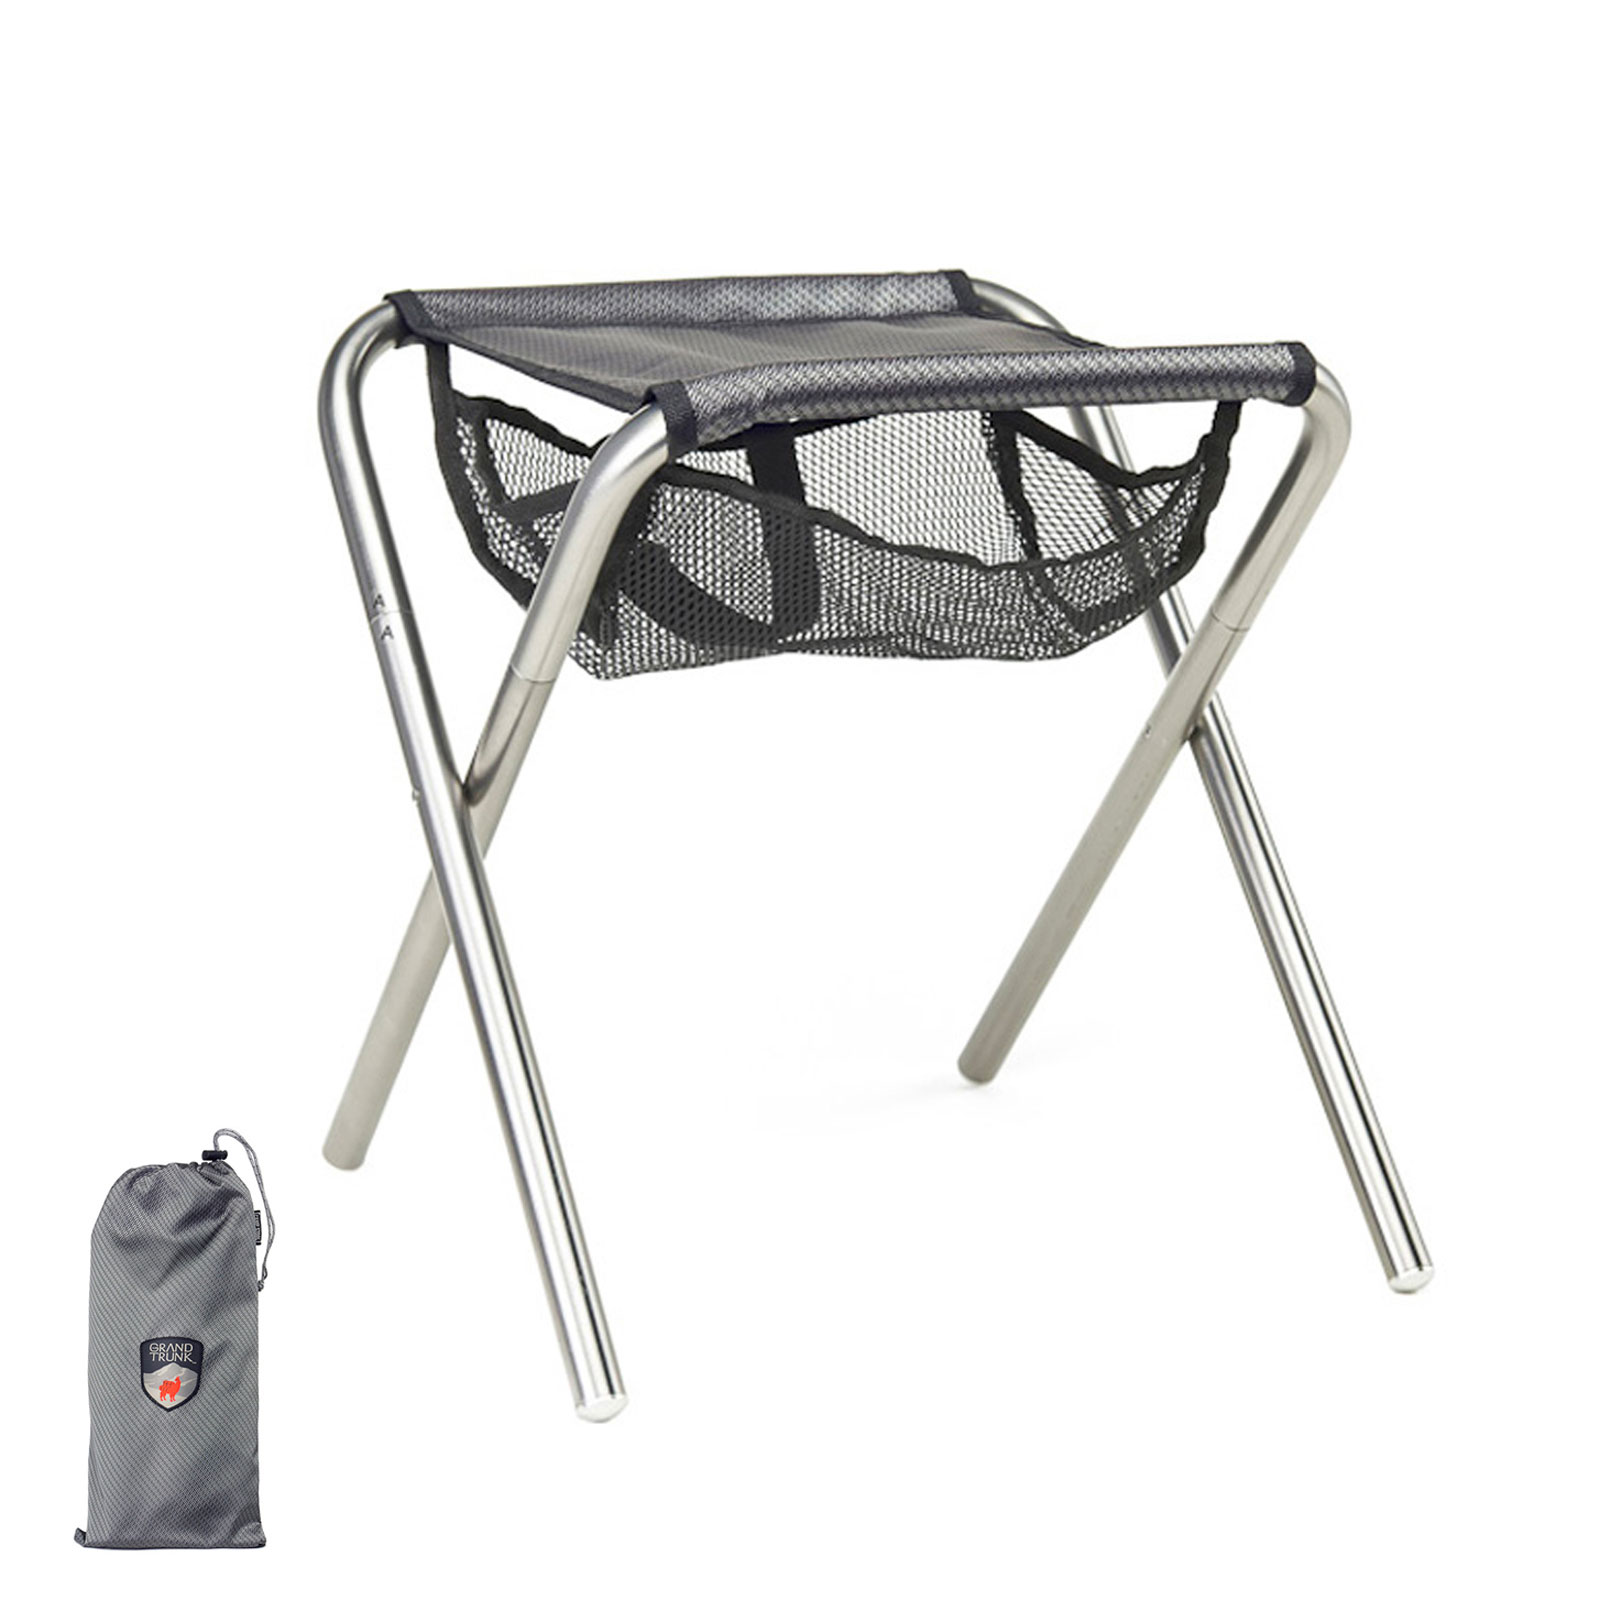 Grand Trunk Collapsible Camp Stool pact Folding Travel Chair